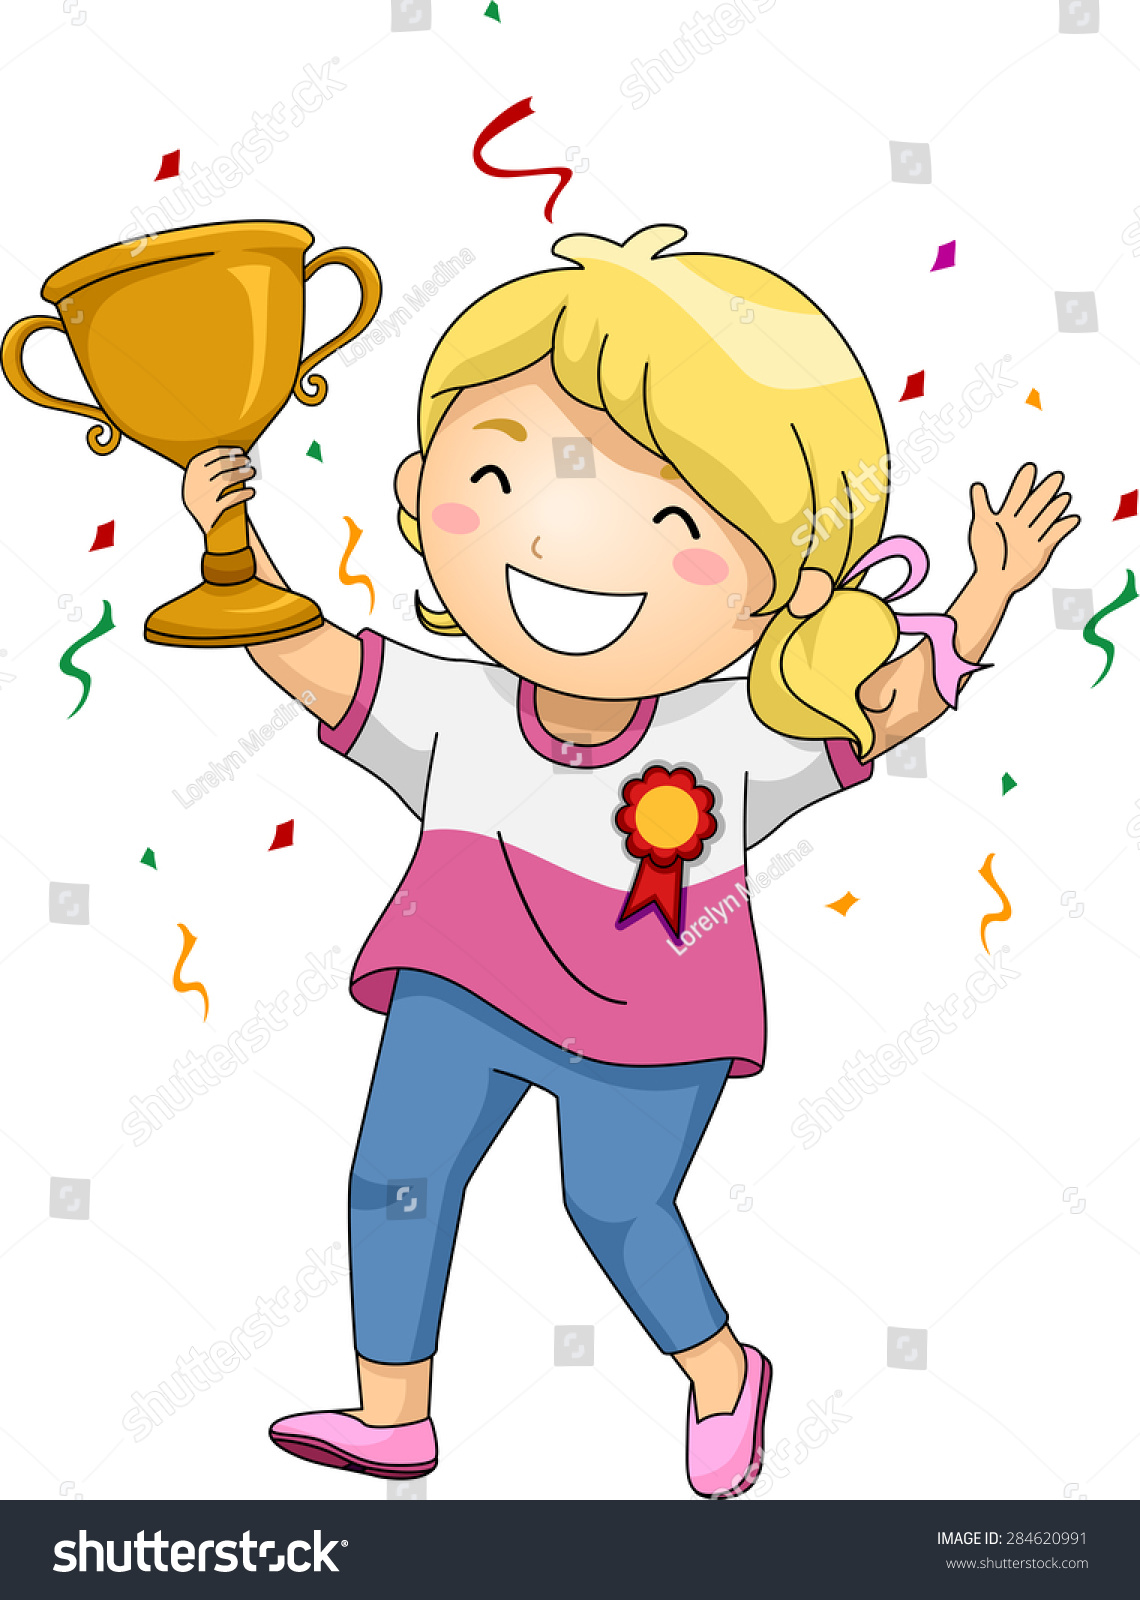 illustration of an overjoyed girl celebrating her victory free clipart trophy cup free clipart trophy award